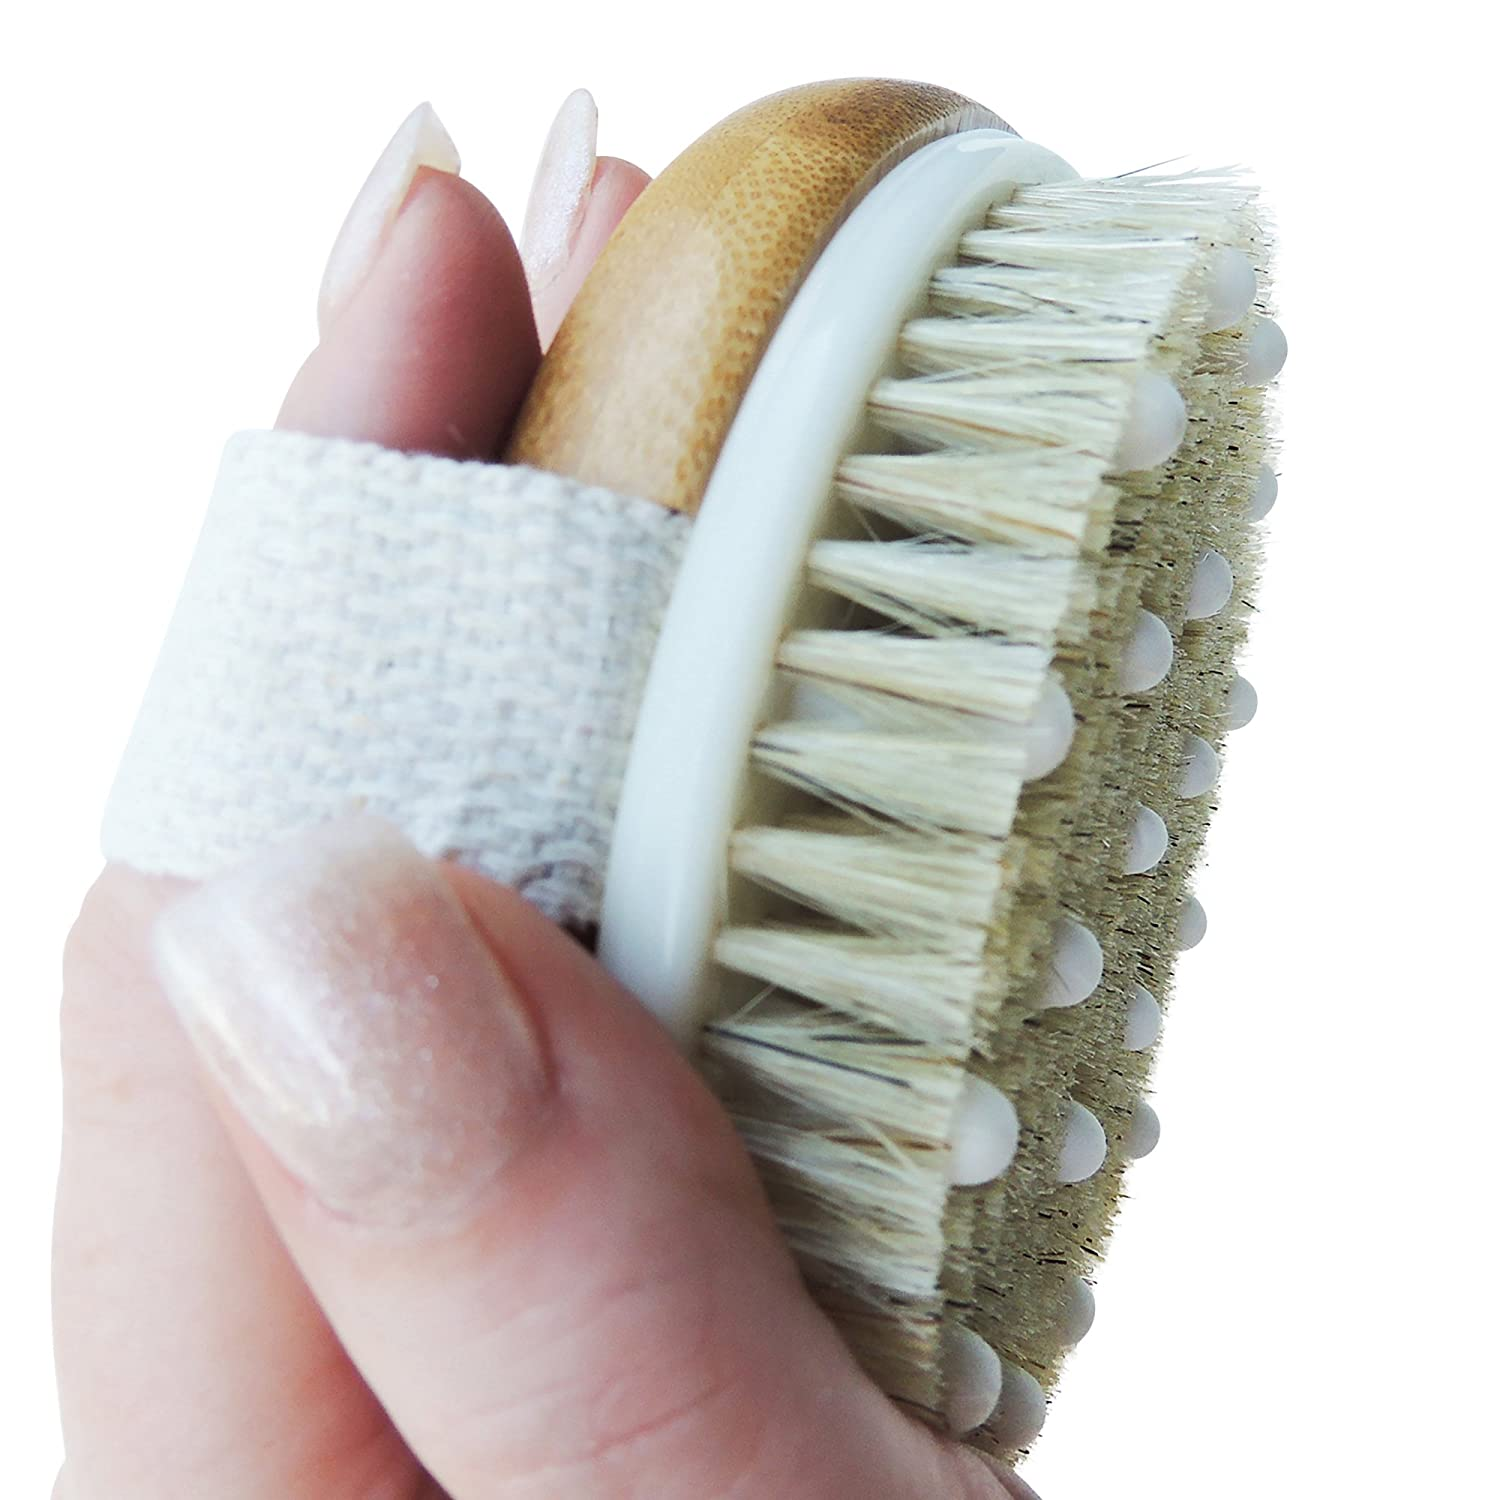 Anti Cellulite Exfoliating Brush. Dry Brushing Home Treatment for Reducing and Preventing The Appearance of Cellulite. Skin Tightening Body Scrub with Natural Boar Bristles and Combined Massagers Skin Dry Brushing